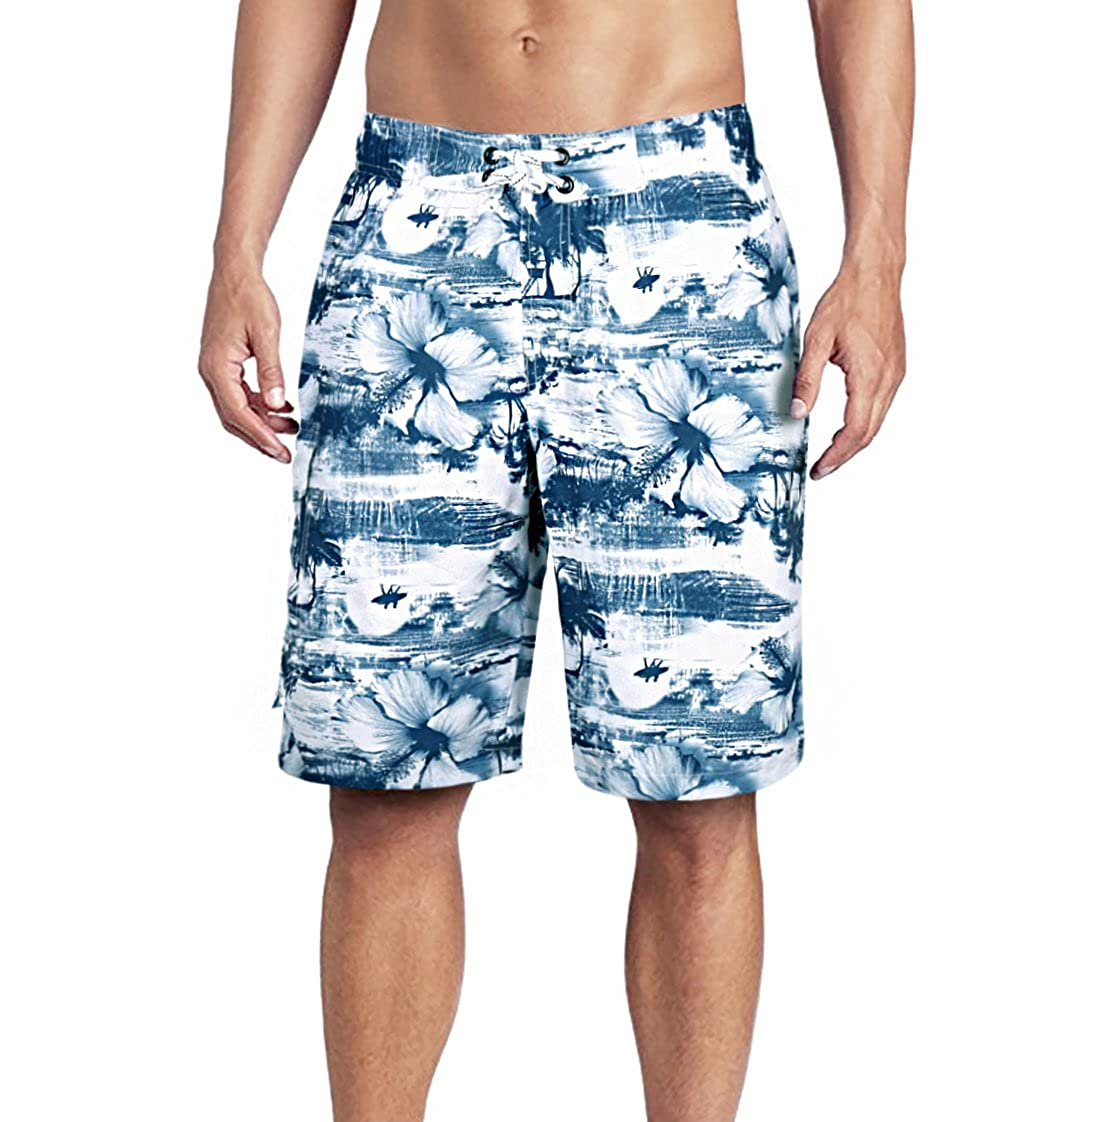 a53fad5c7b903 It has some useful characteristics, sweat-absorbing, quick drying, etc.  Normally it takes 5 to 10 minutes, swim shorts ...